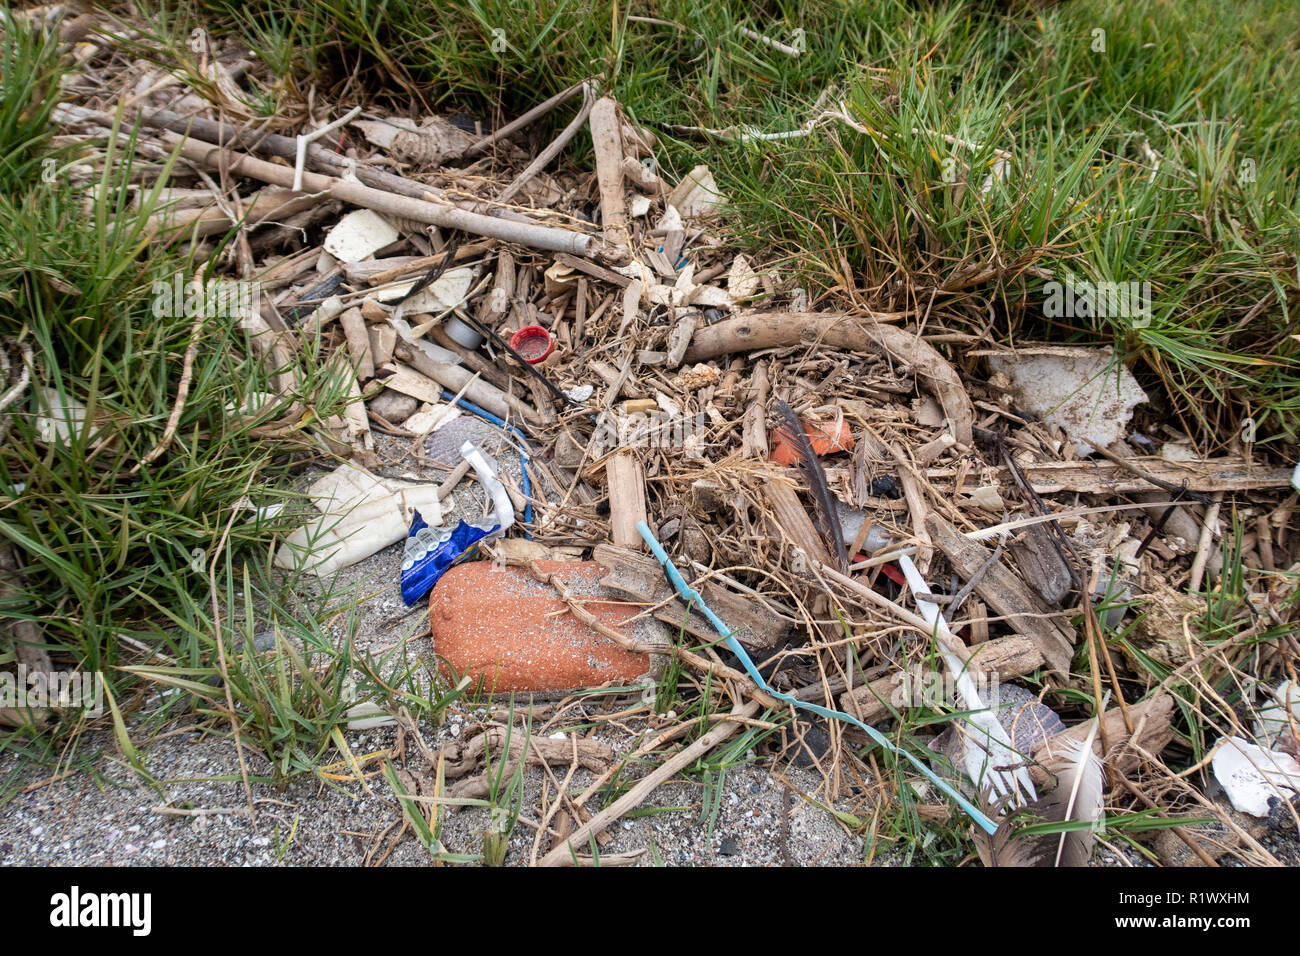 Plastics and other rubbish washed up on beaches in Peru - Stock Image